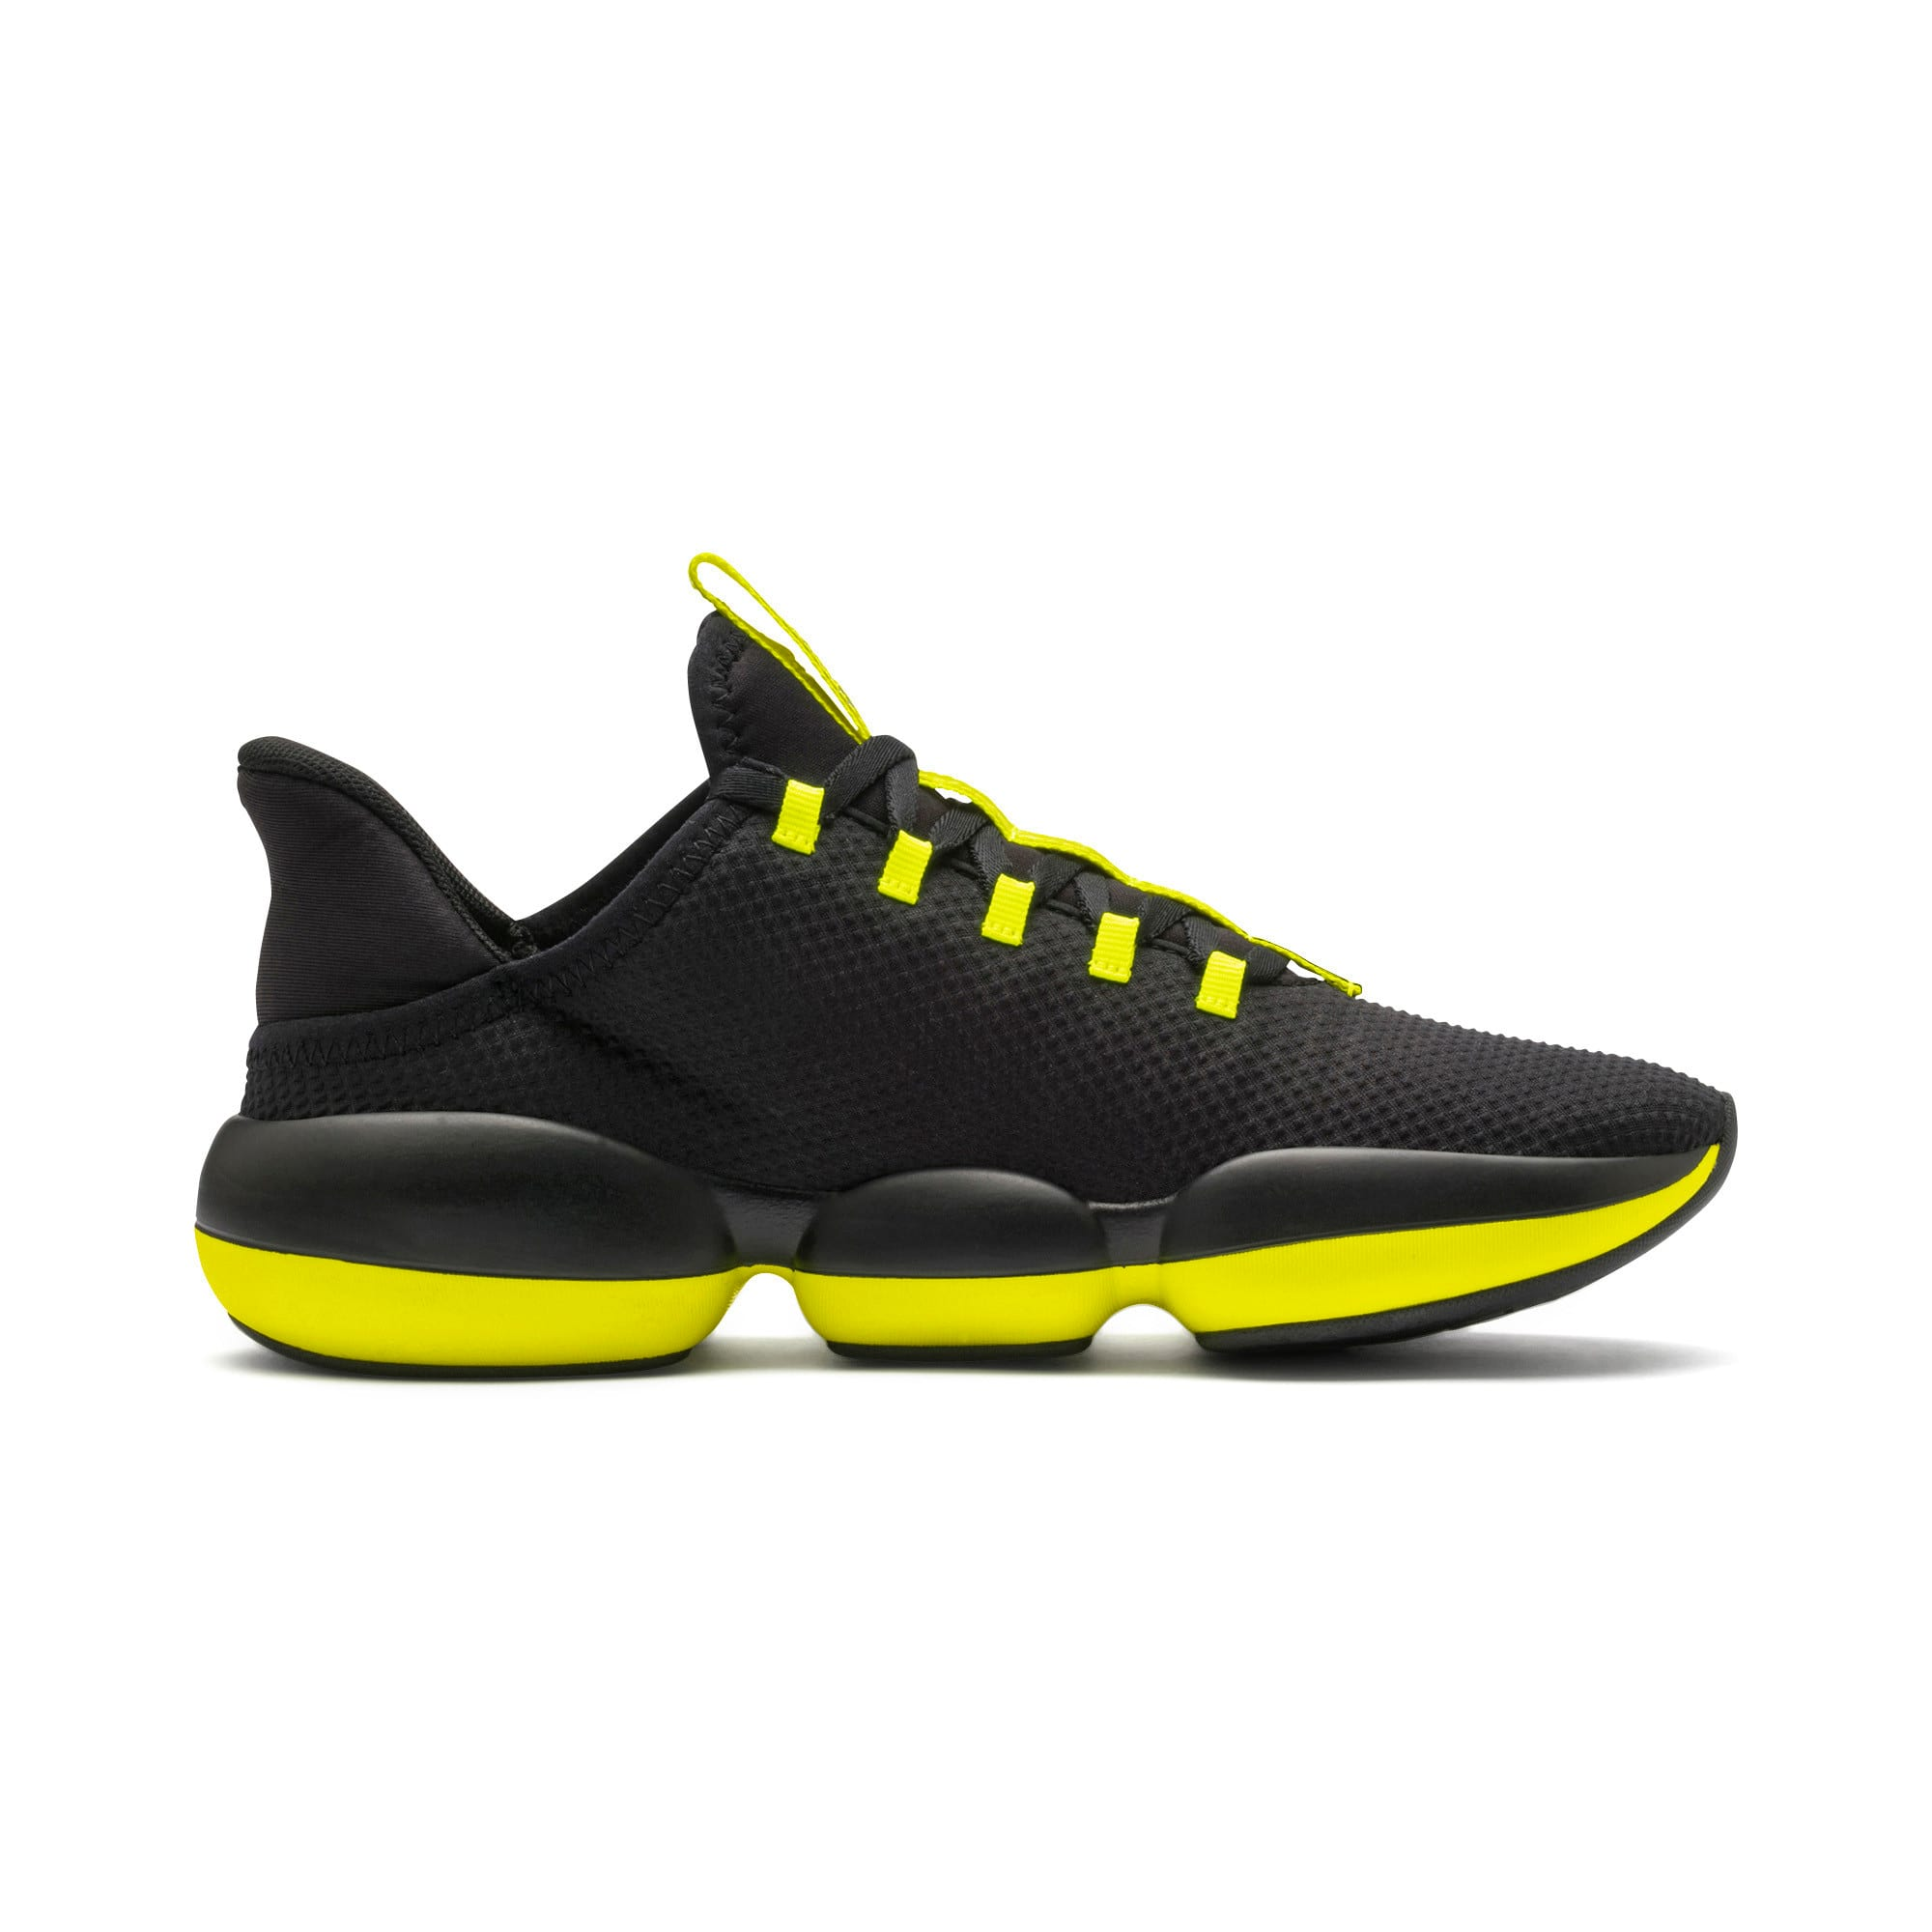 Thumbnail 6 of Mode XT Shift Women's Training Shoes, Puma Black-Yellow Alert, medium